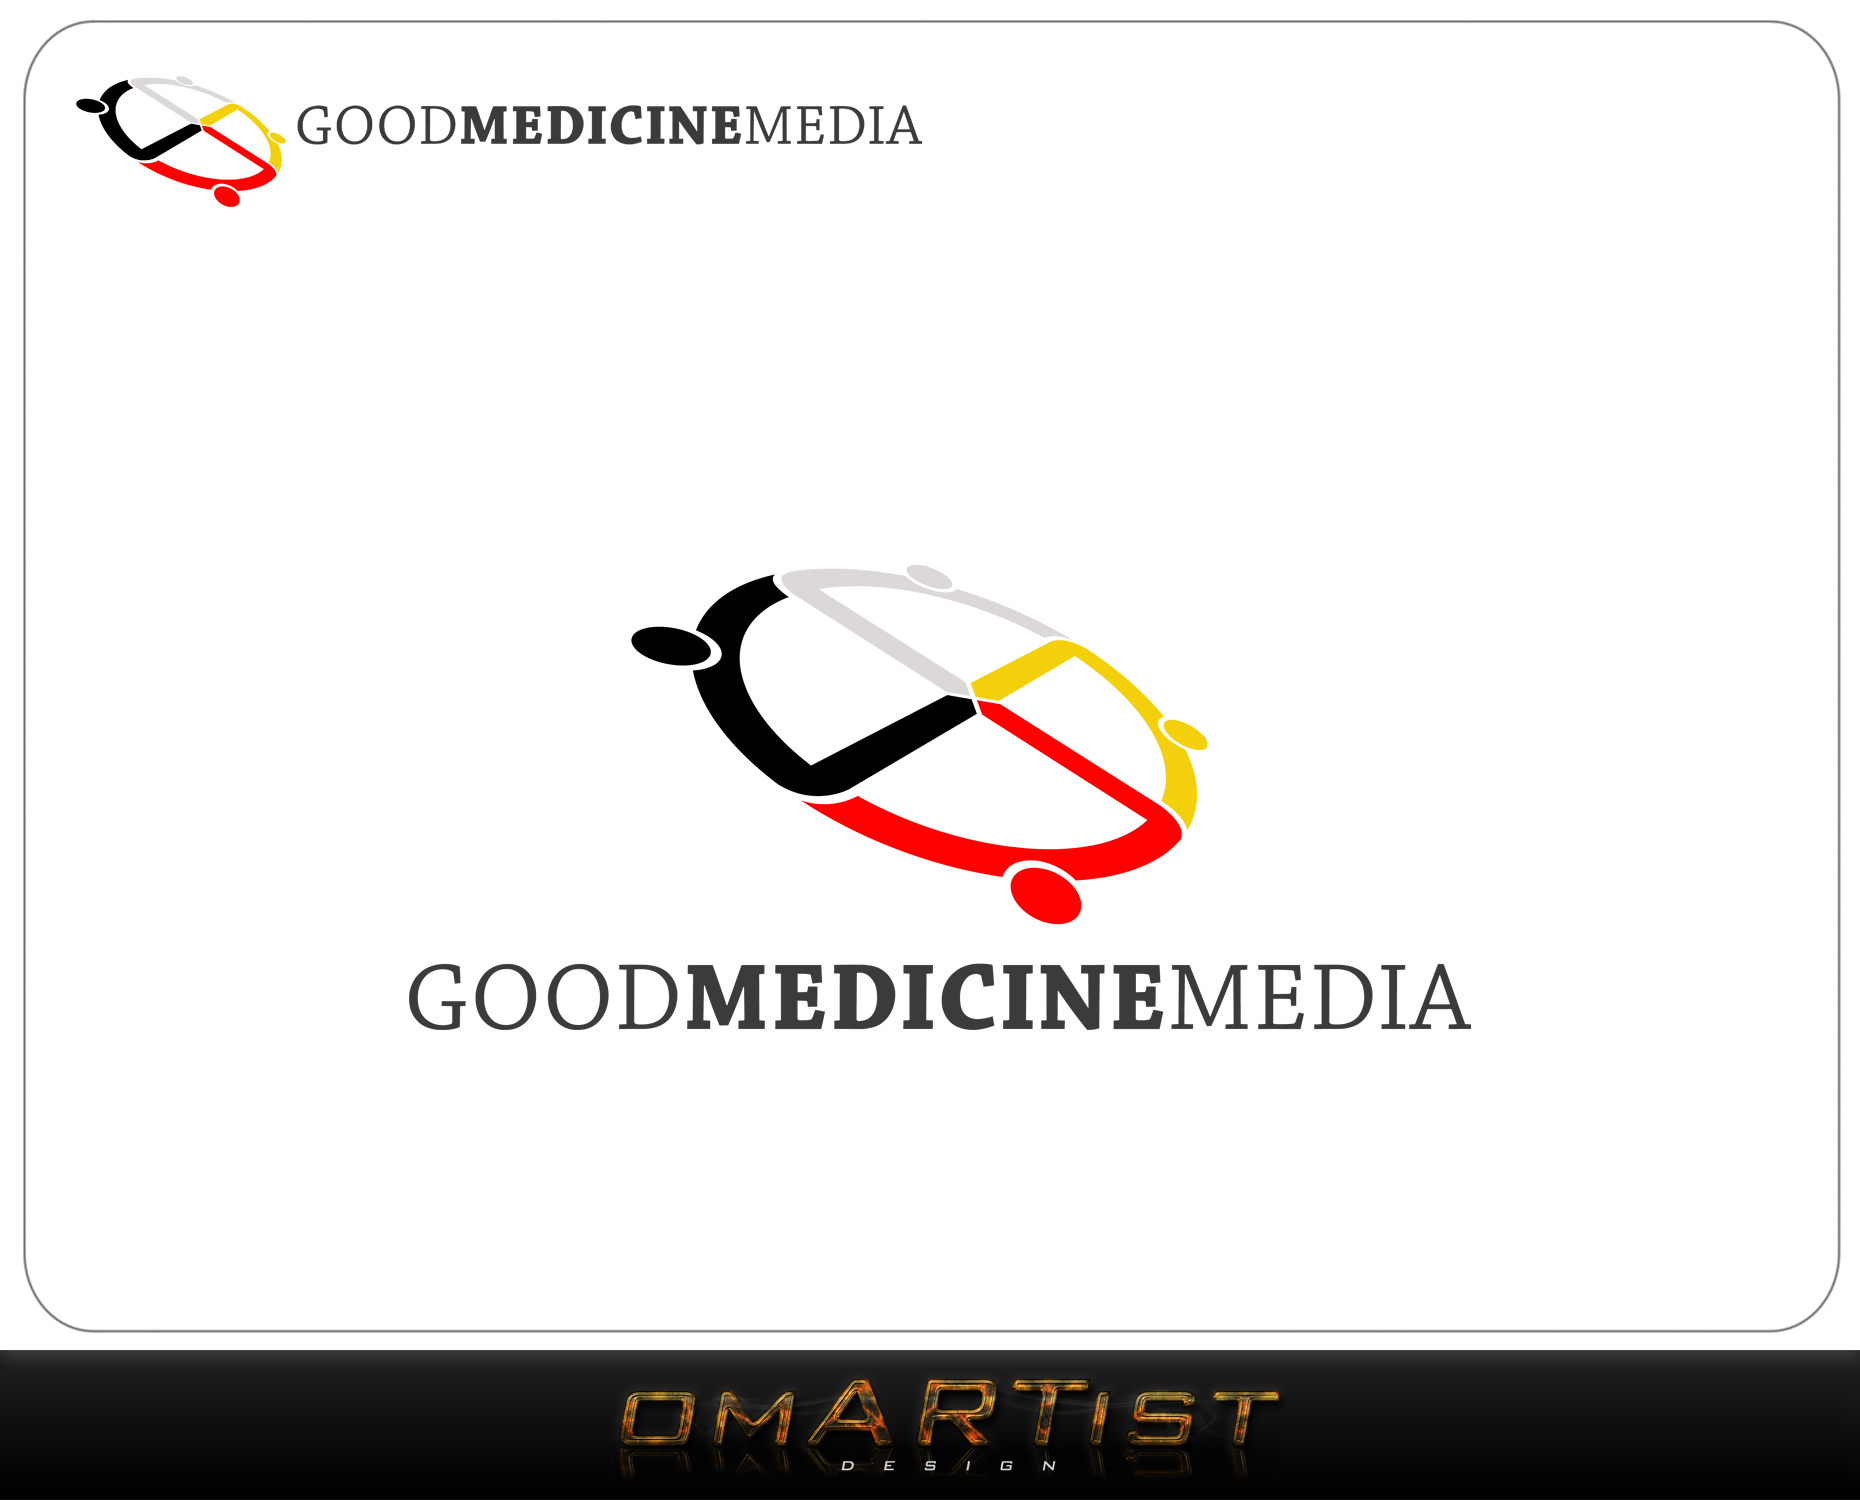 Logo Design by omARTist - Entry No. 119 in the Logo Design Contest Good Medicine Media Logo Design.